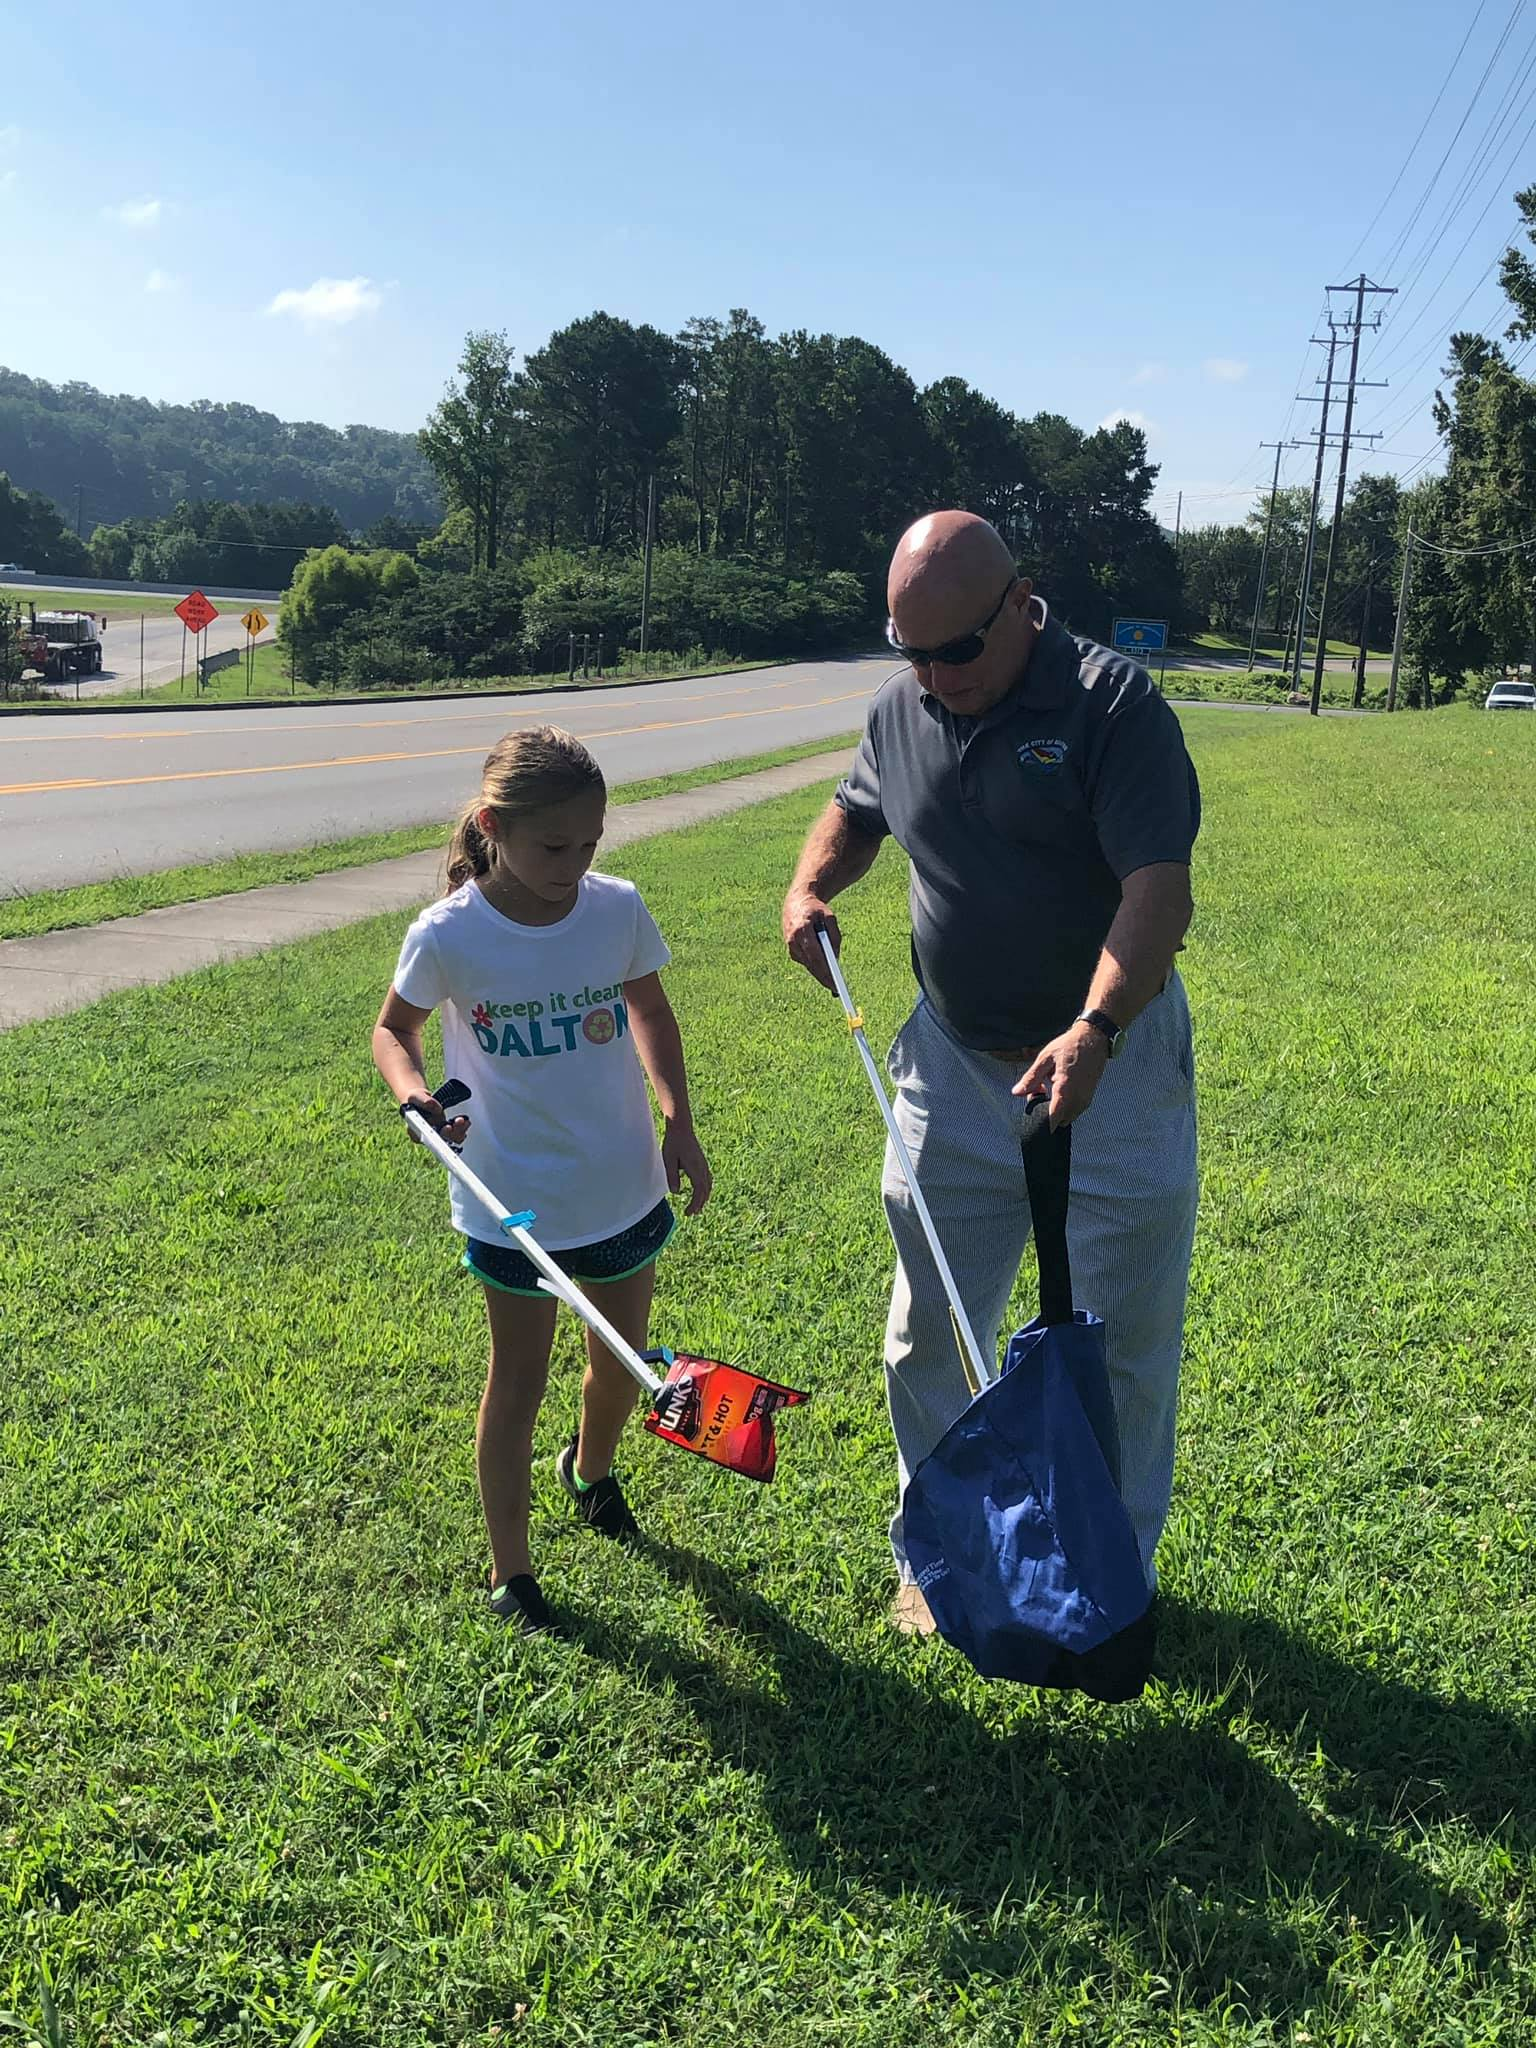 Dalton's Mayor Mock and Brookwood student, Emery silvers, are passionate about tackling litter in our city! Join them in cleaning up our town by taking the Keep it Clean pledge and commit to cleaning up one section of dalton just 4 times each year!